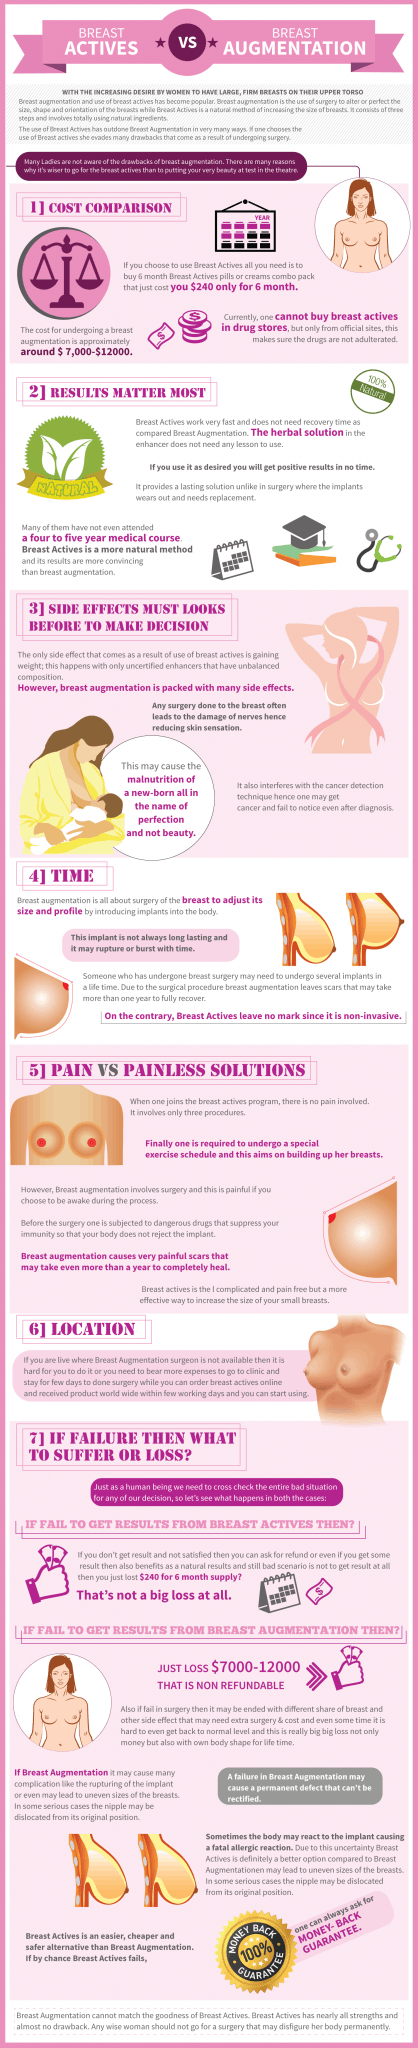 Breast Actives Vs Breast Augmentation